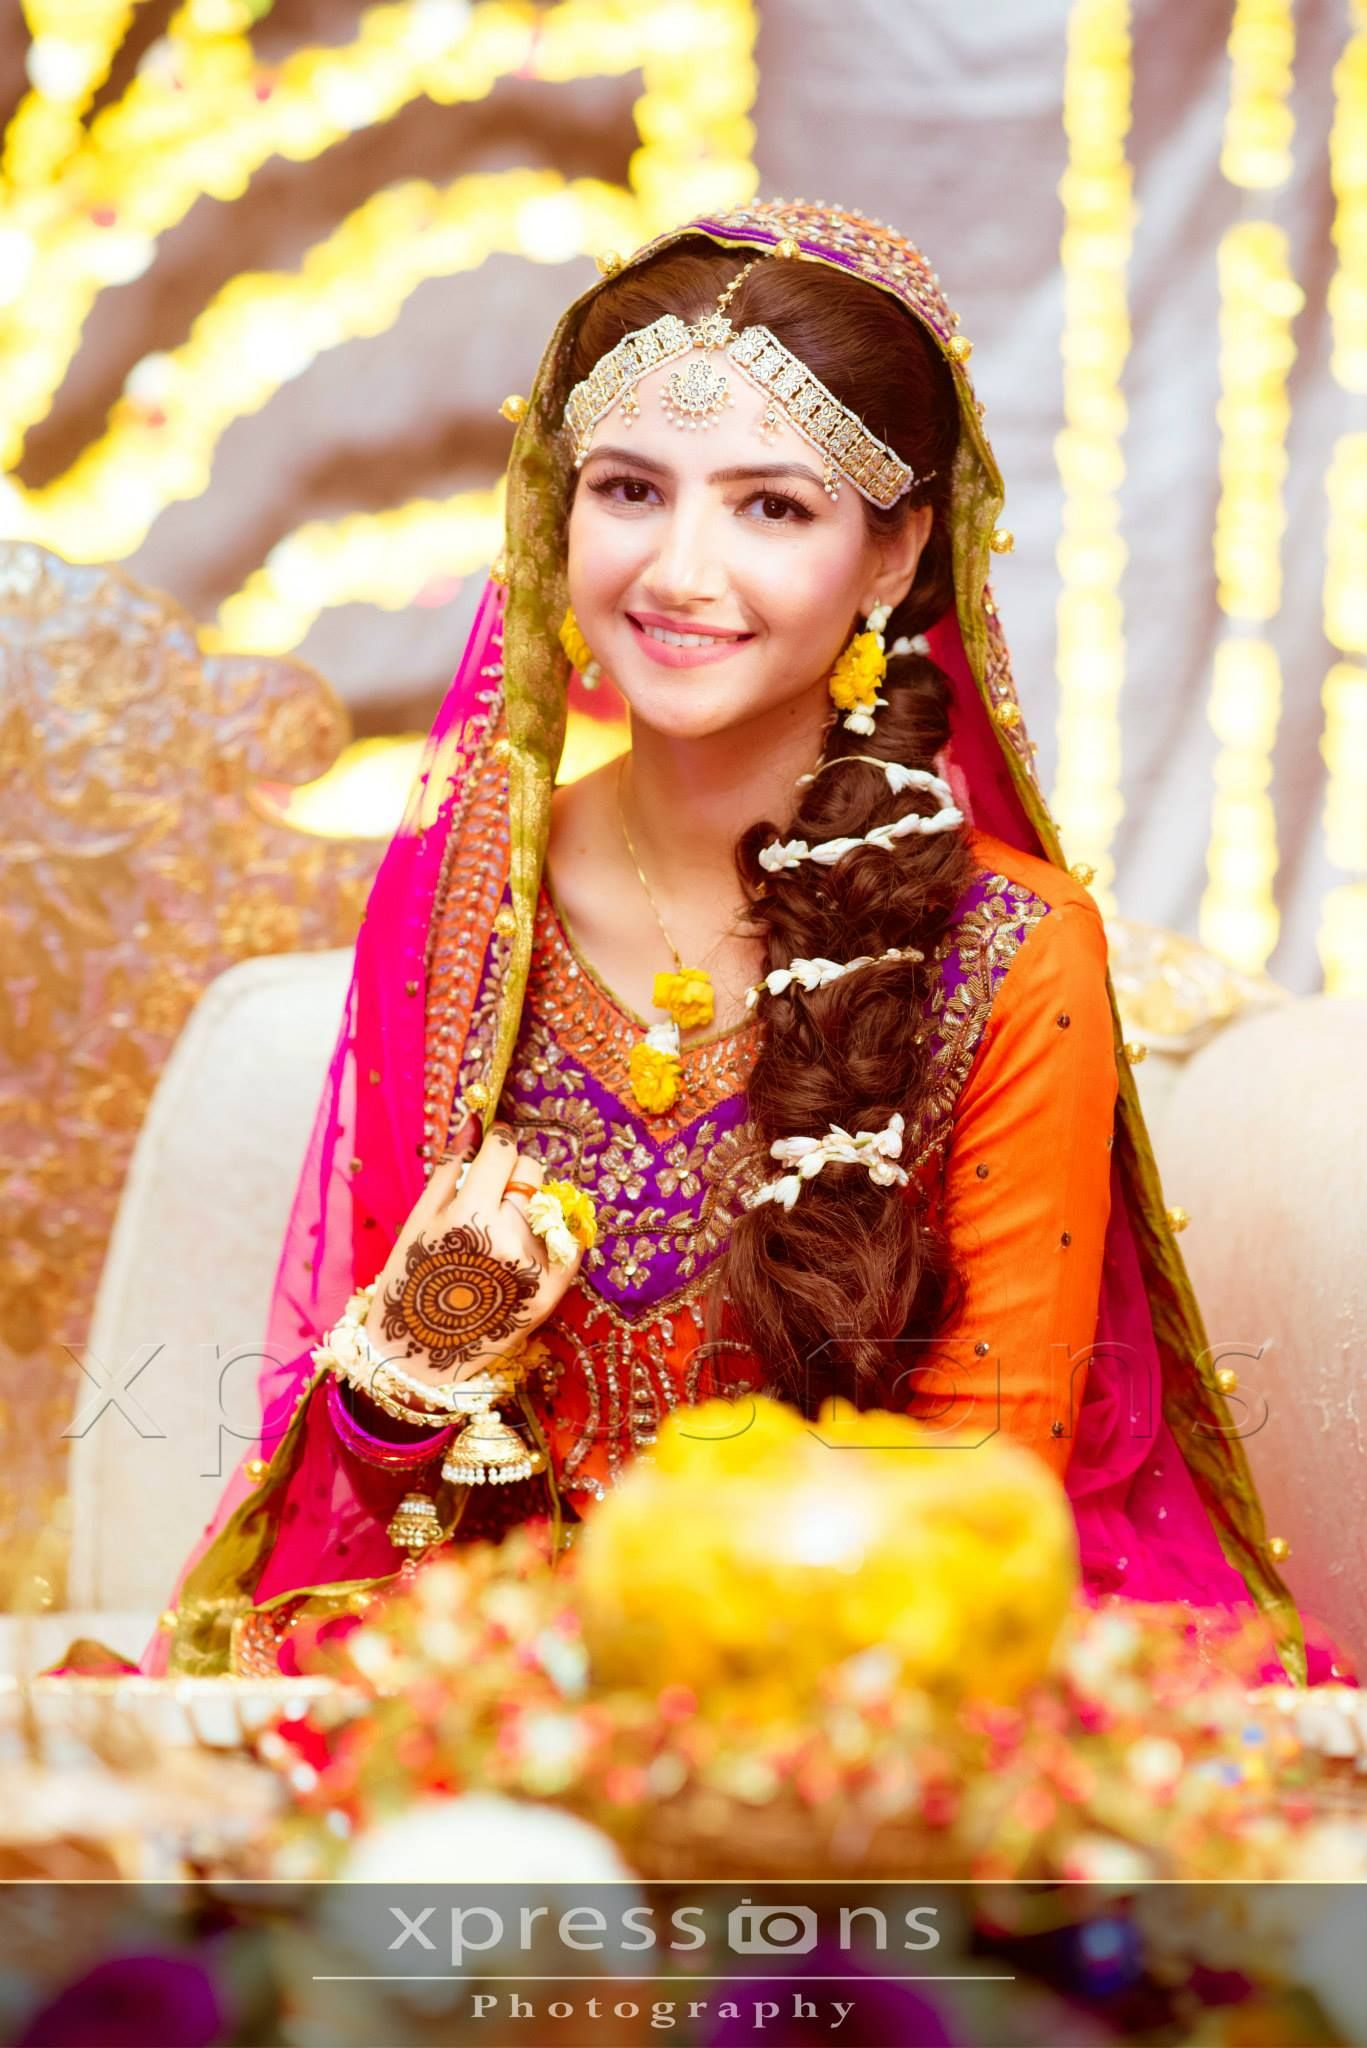 Pin On Wedding Photography Of Mehndi Brides